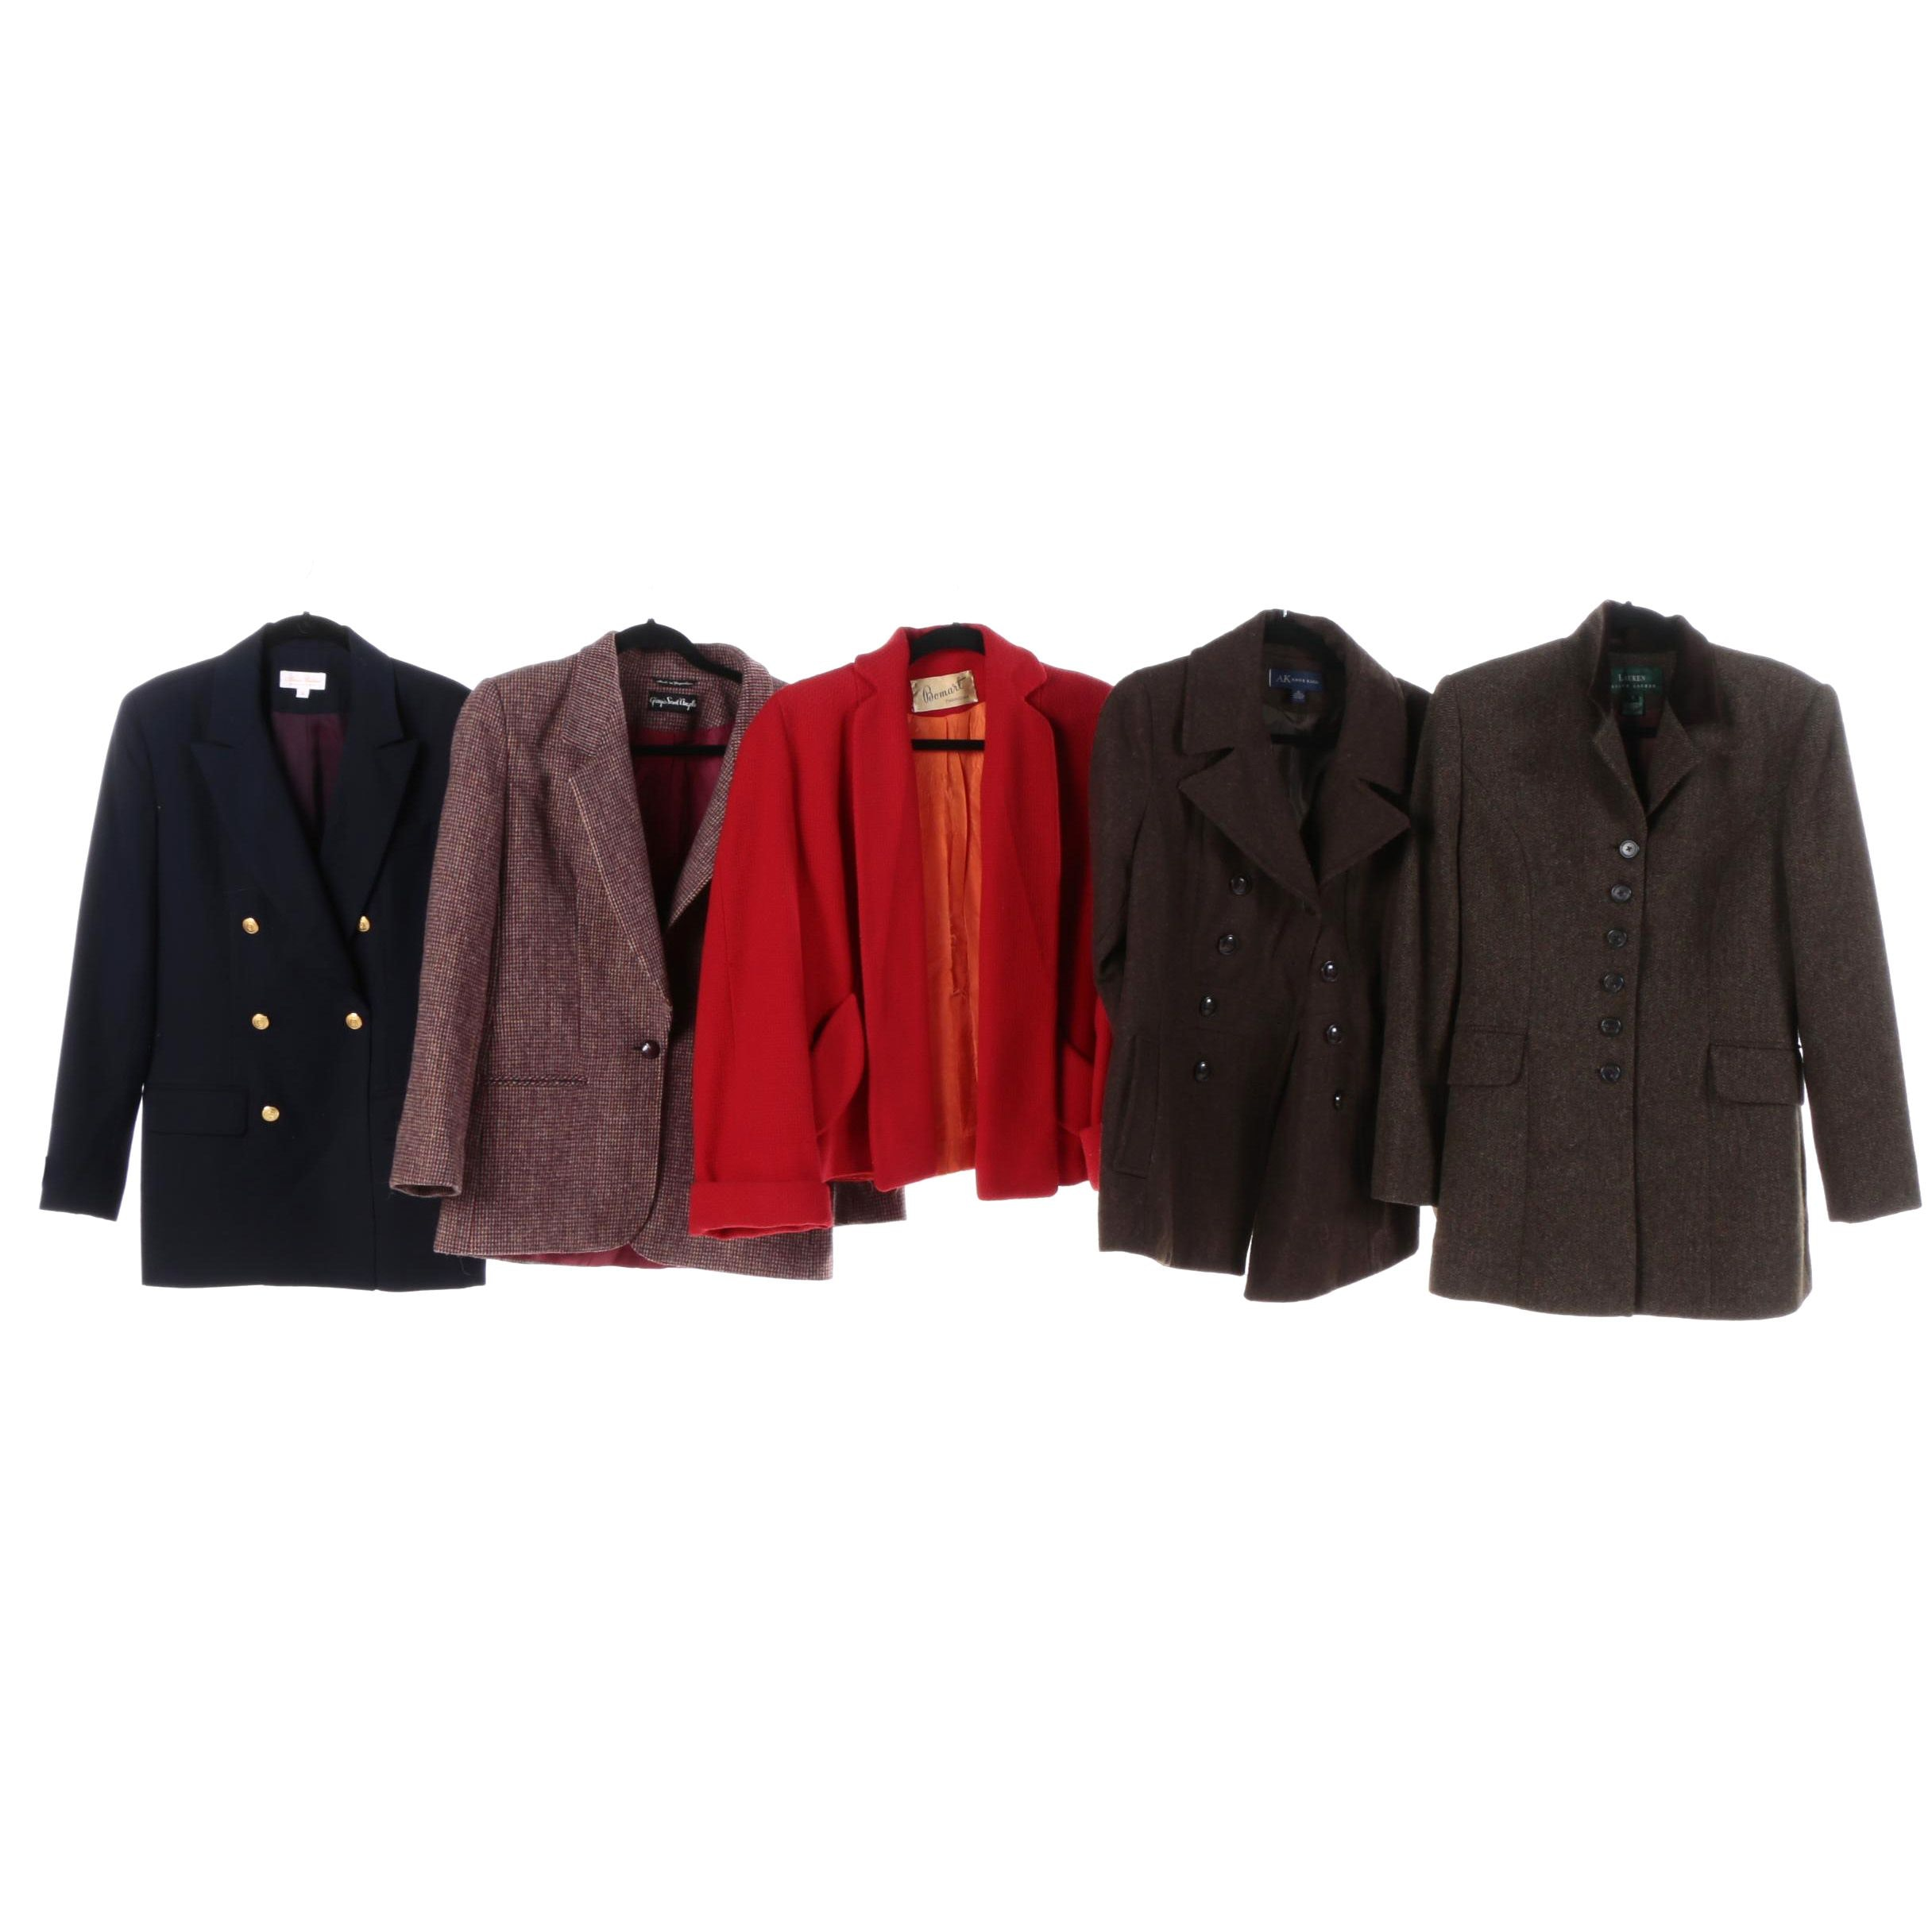 Women's Vintage and Contemporary Jackets Including Brooks Brothers